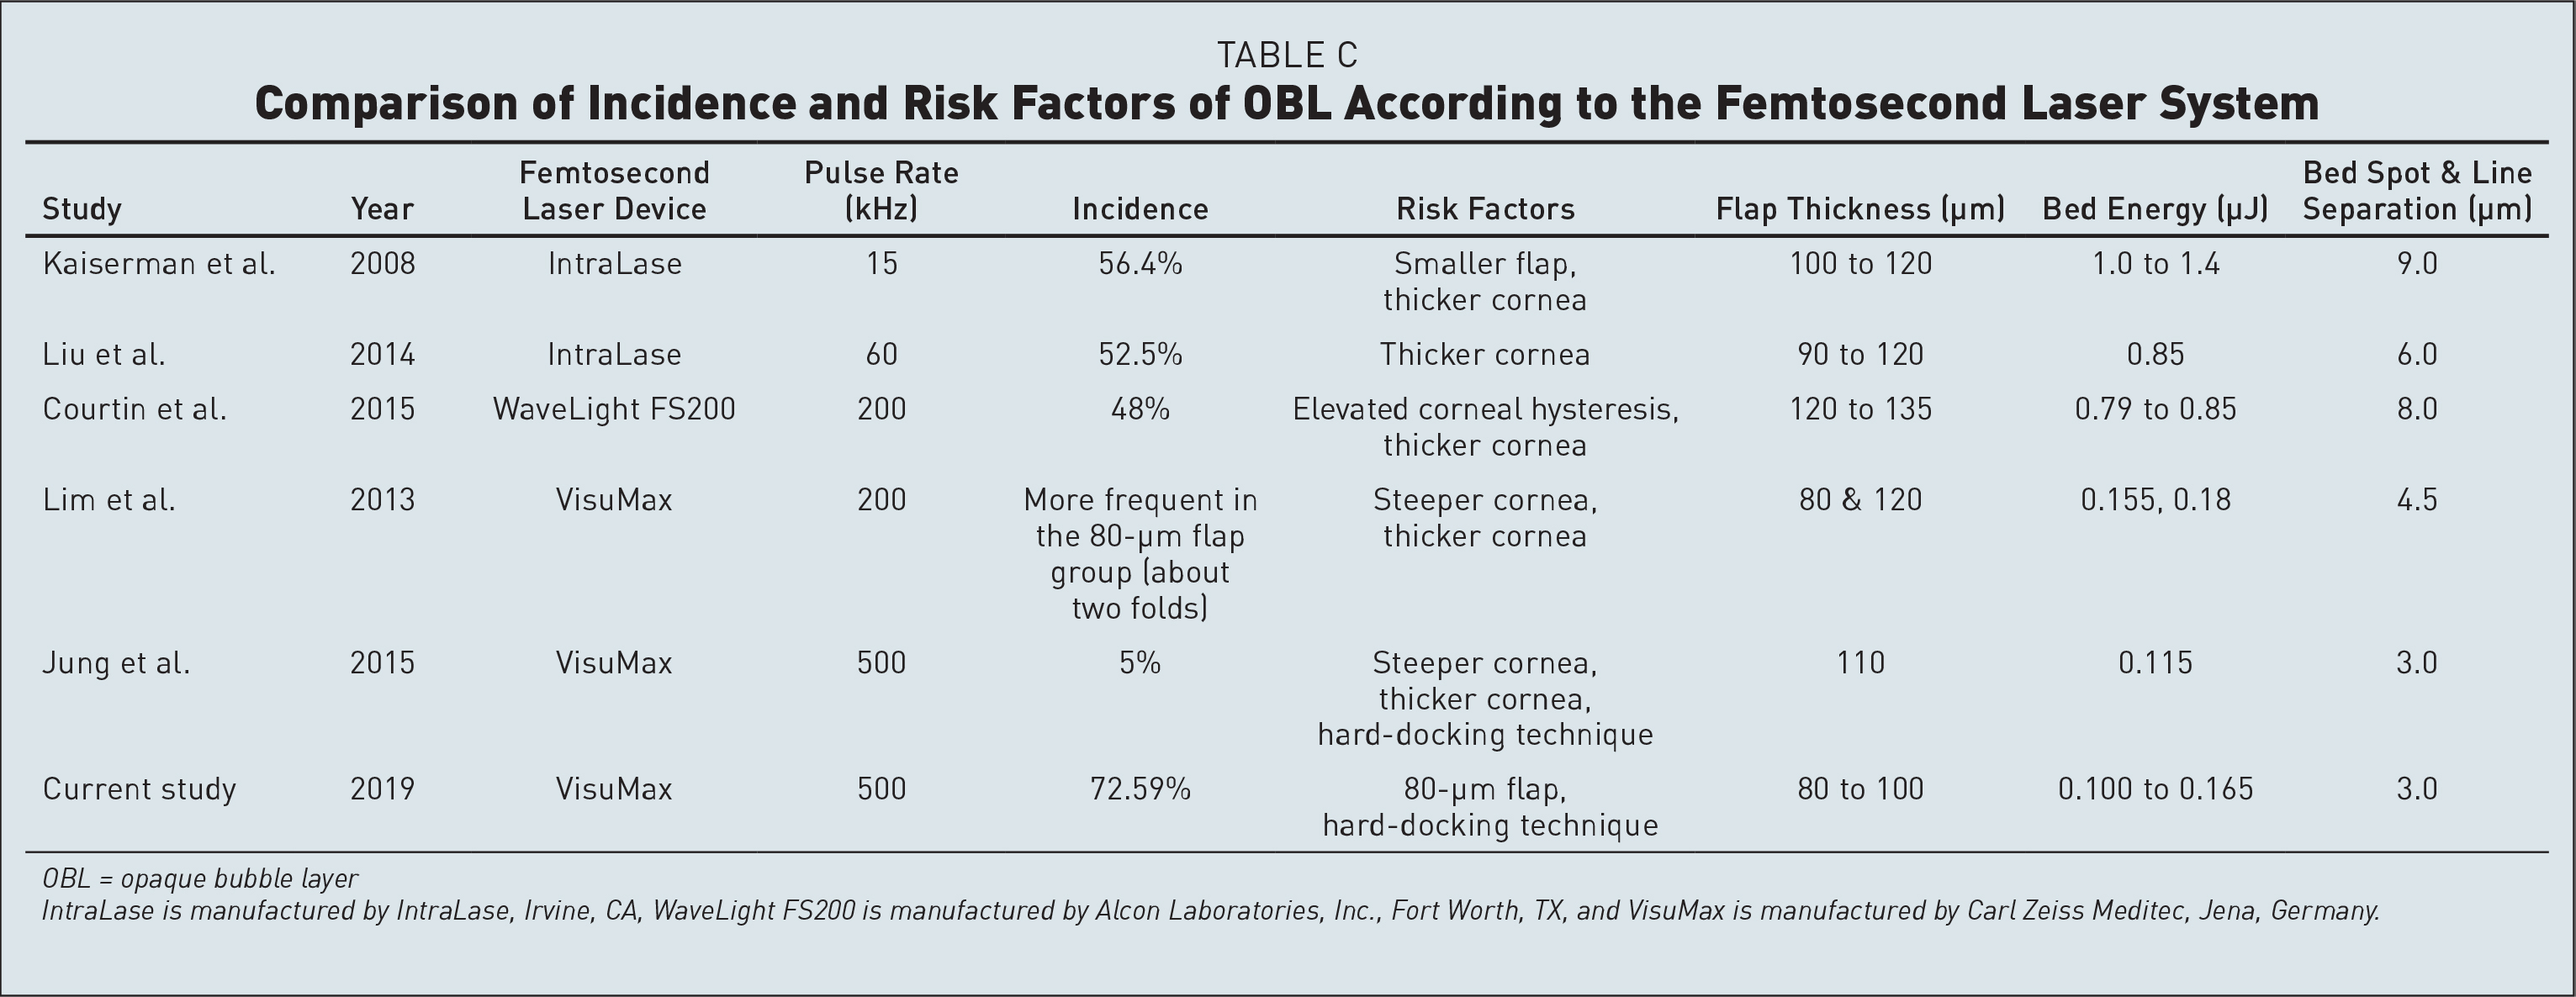 Comparison of Incidence and Risk Factors of OBL According to the Femtosecond Laser System